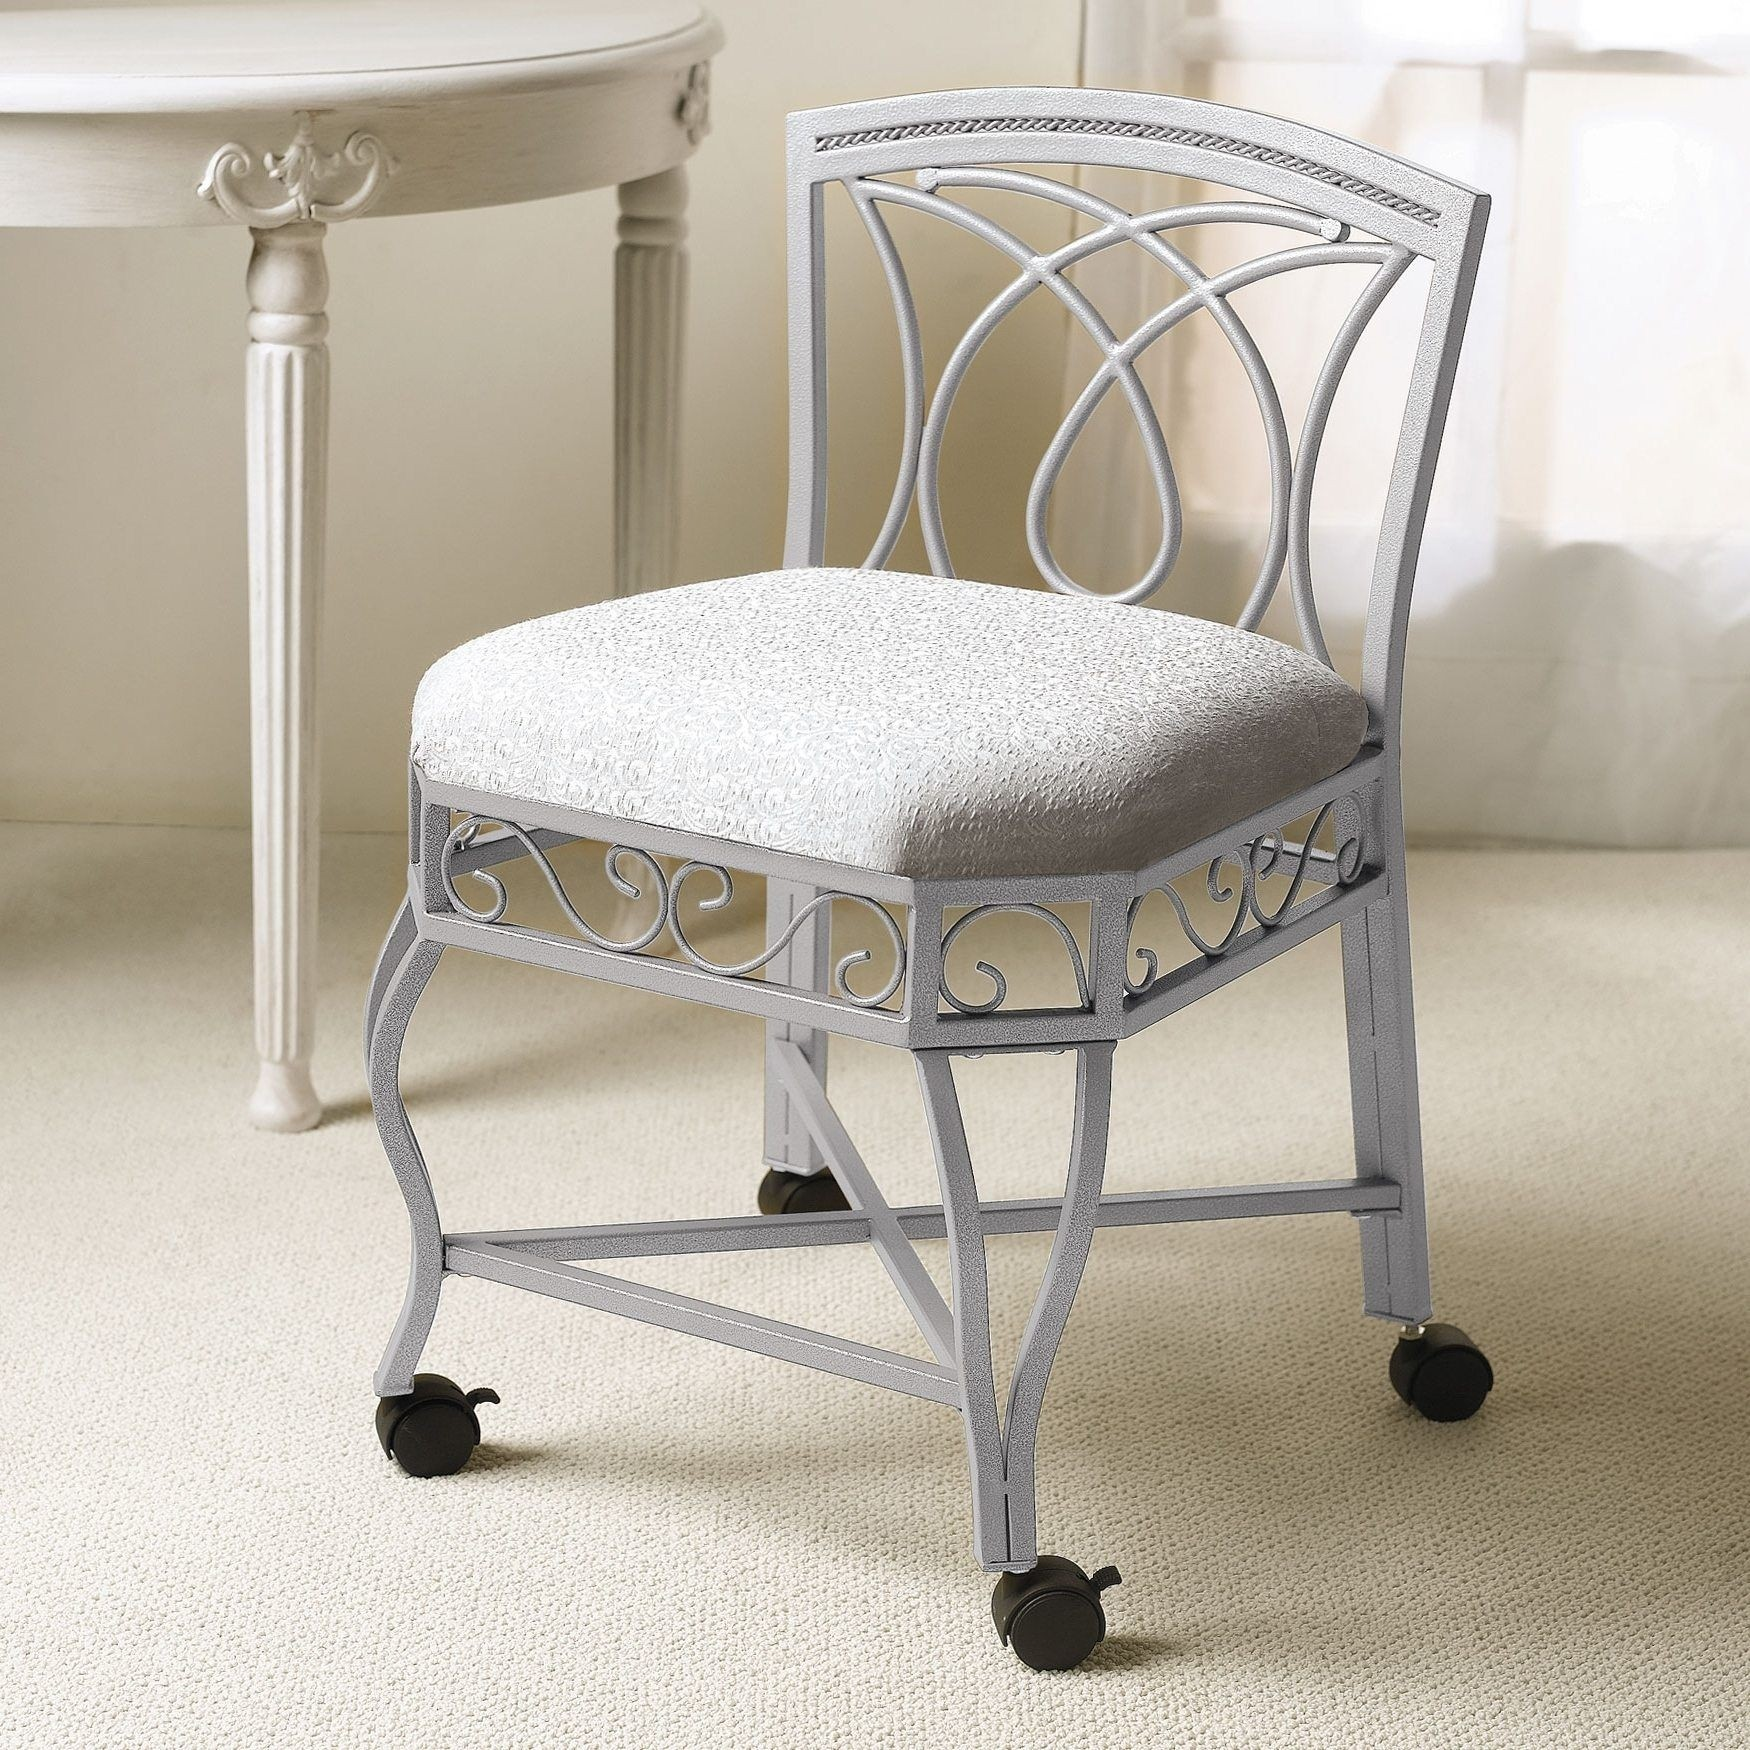 bathroom vanity chairs wedding chair covers wholesale ideas on foter with wheels uploaded by famous design